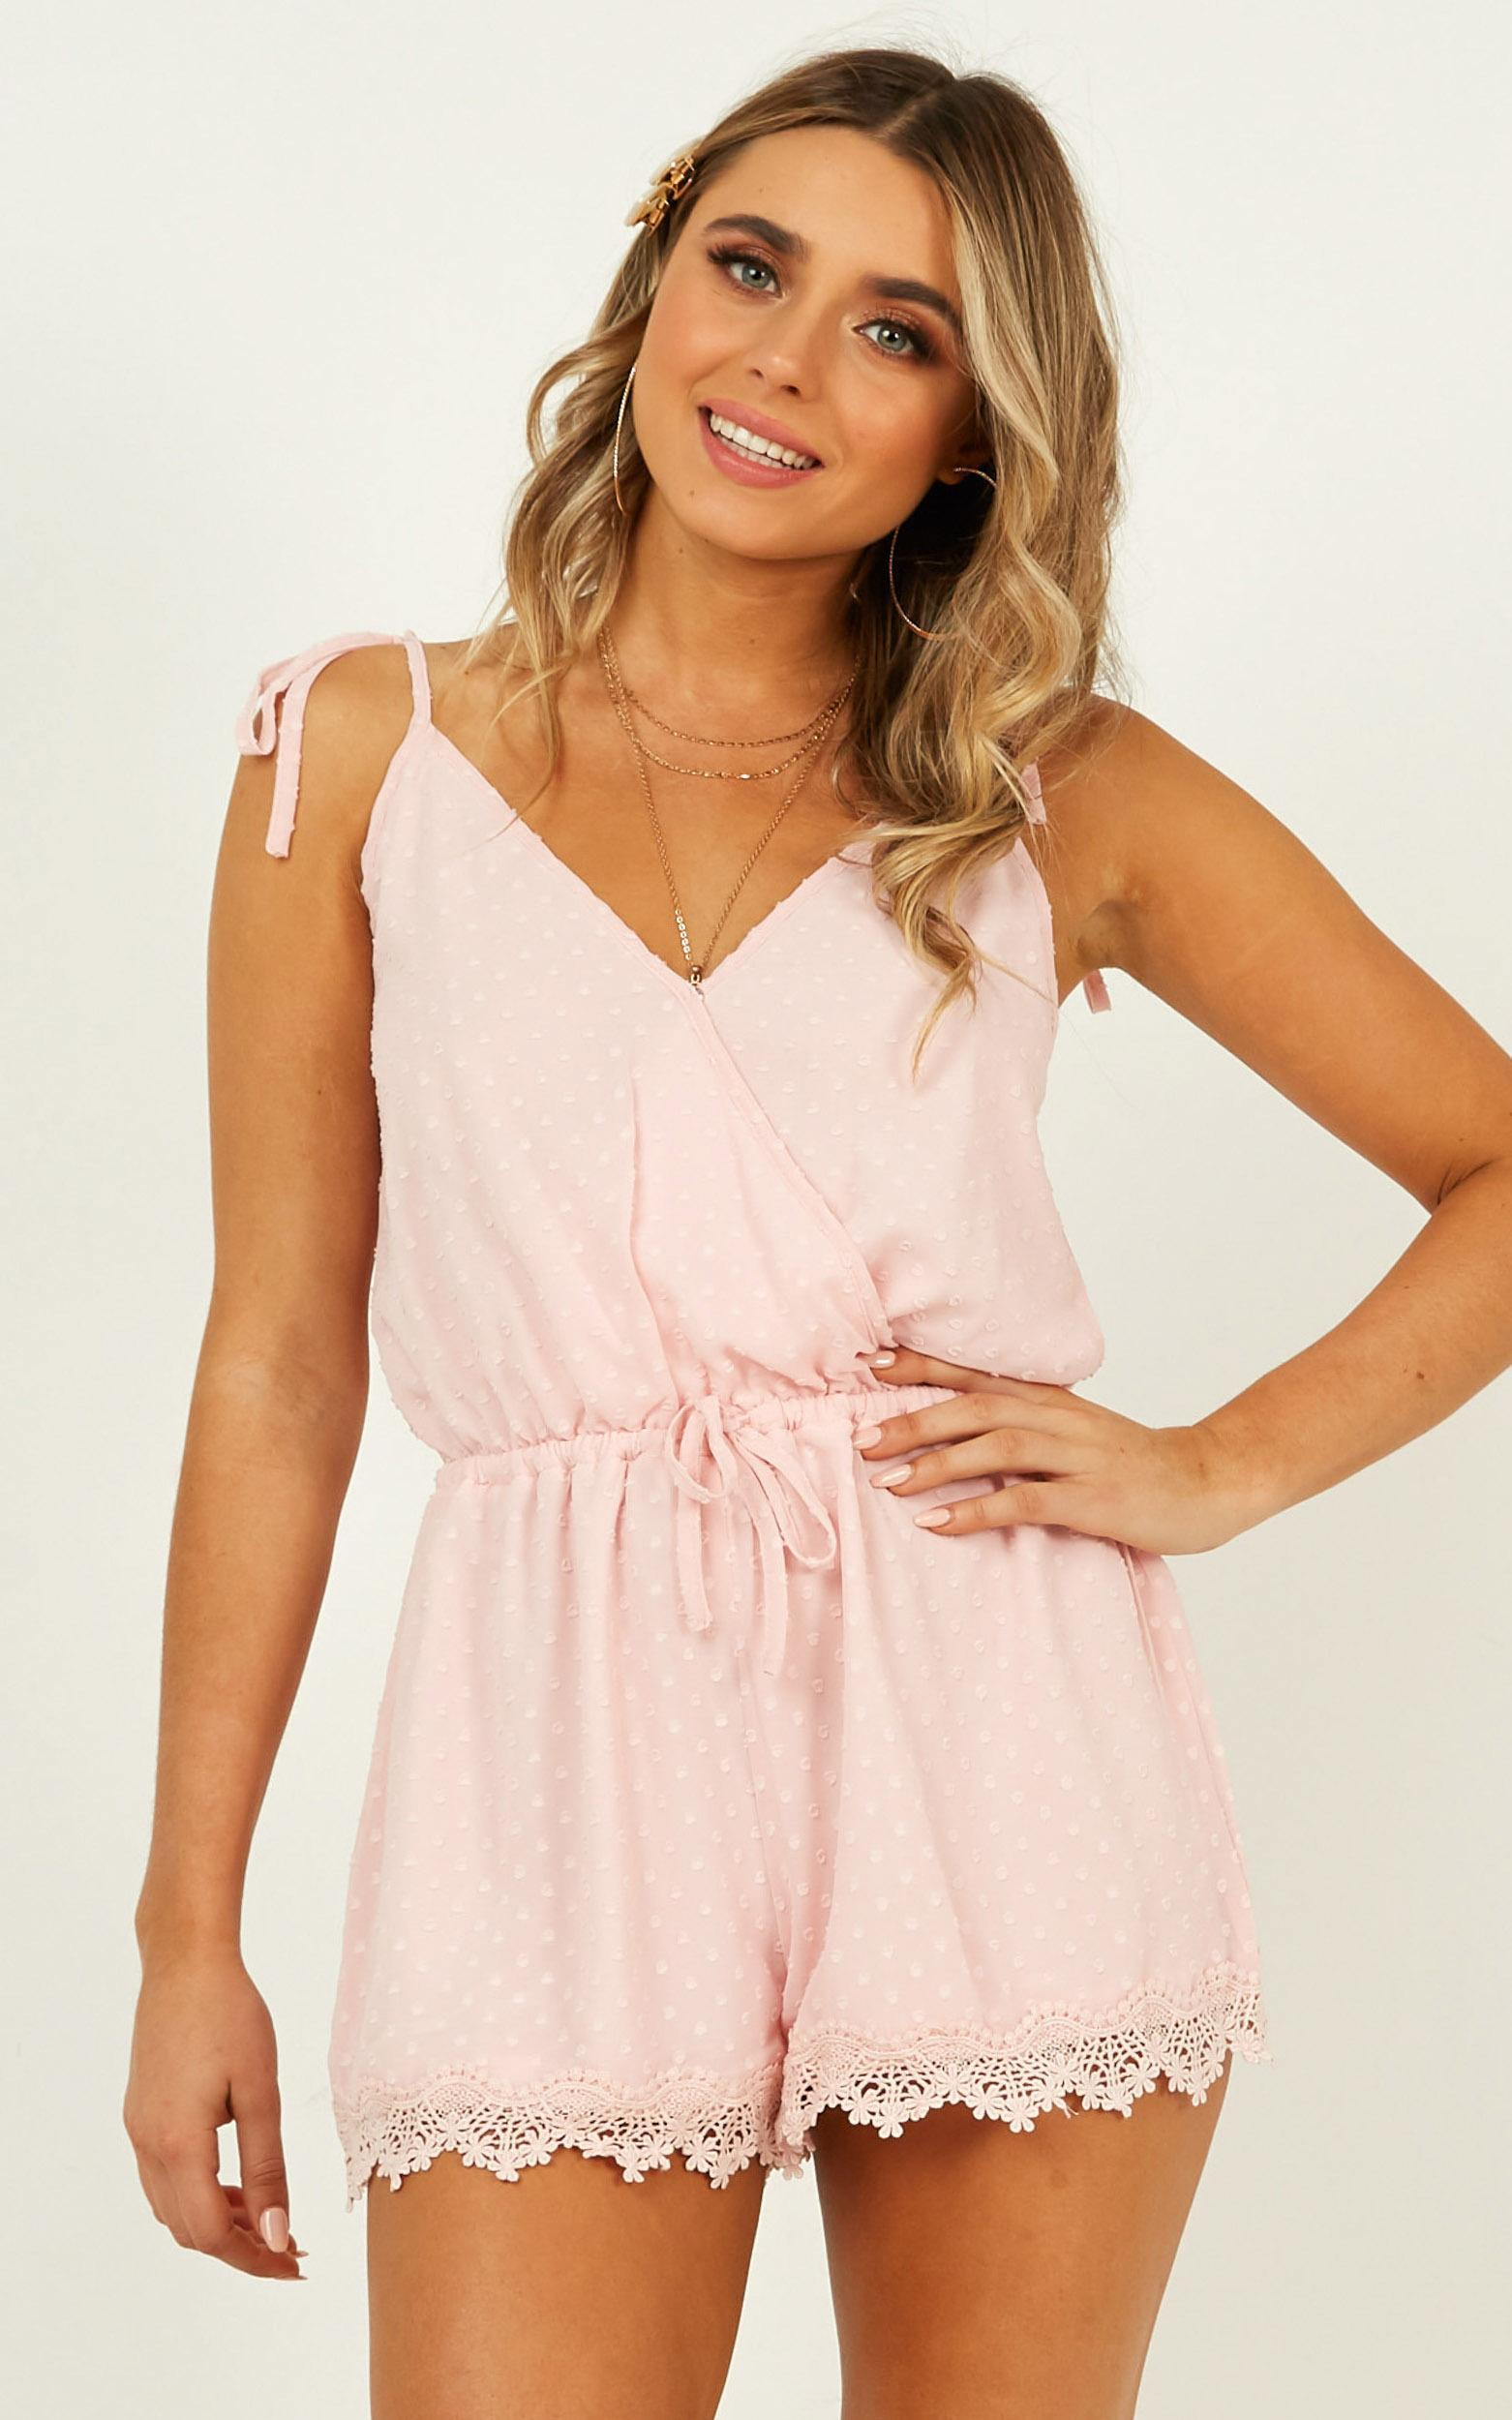 Tropo Dream Playsuit in blush - 20 (XXXXL), Blush, hi-res image number null